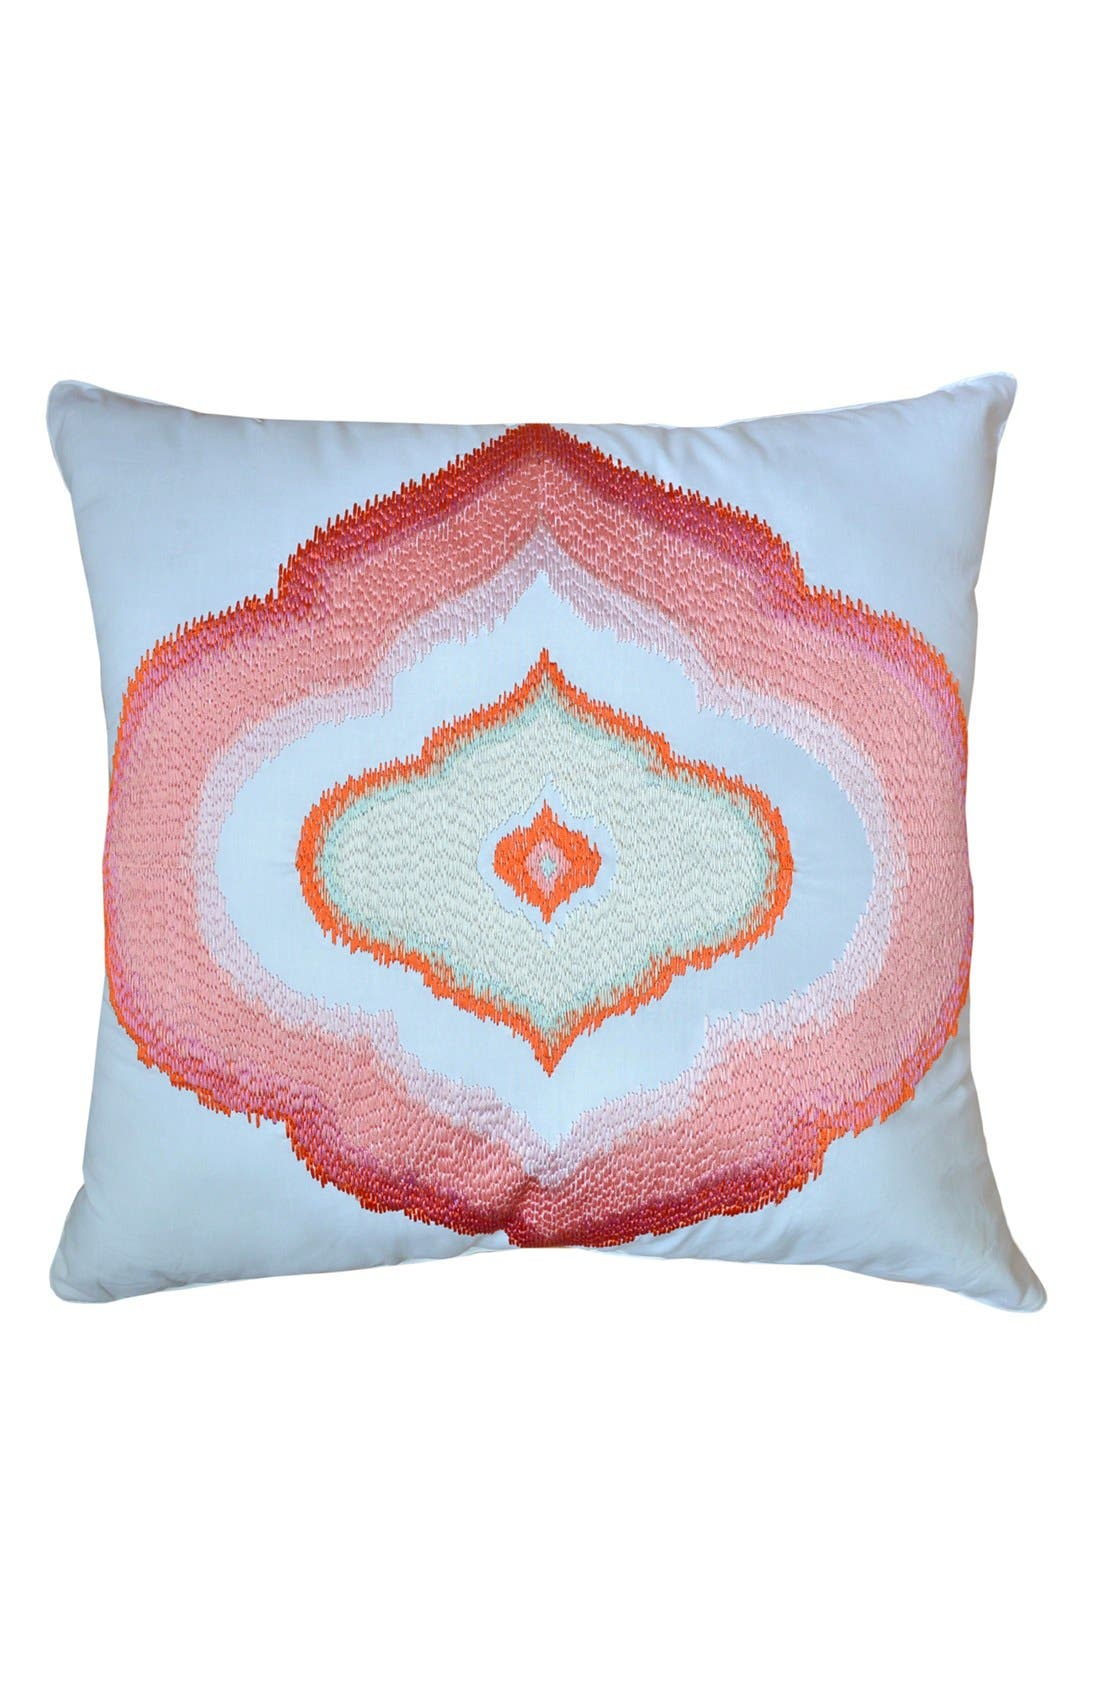 Alternate Image 1 Selected - Dena Home 'Retreat' Embroidered Square Pillow